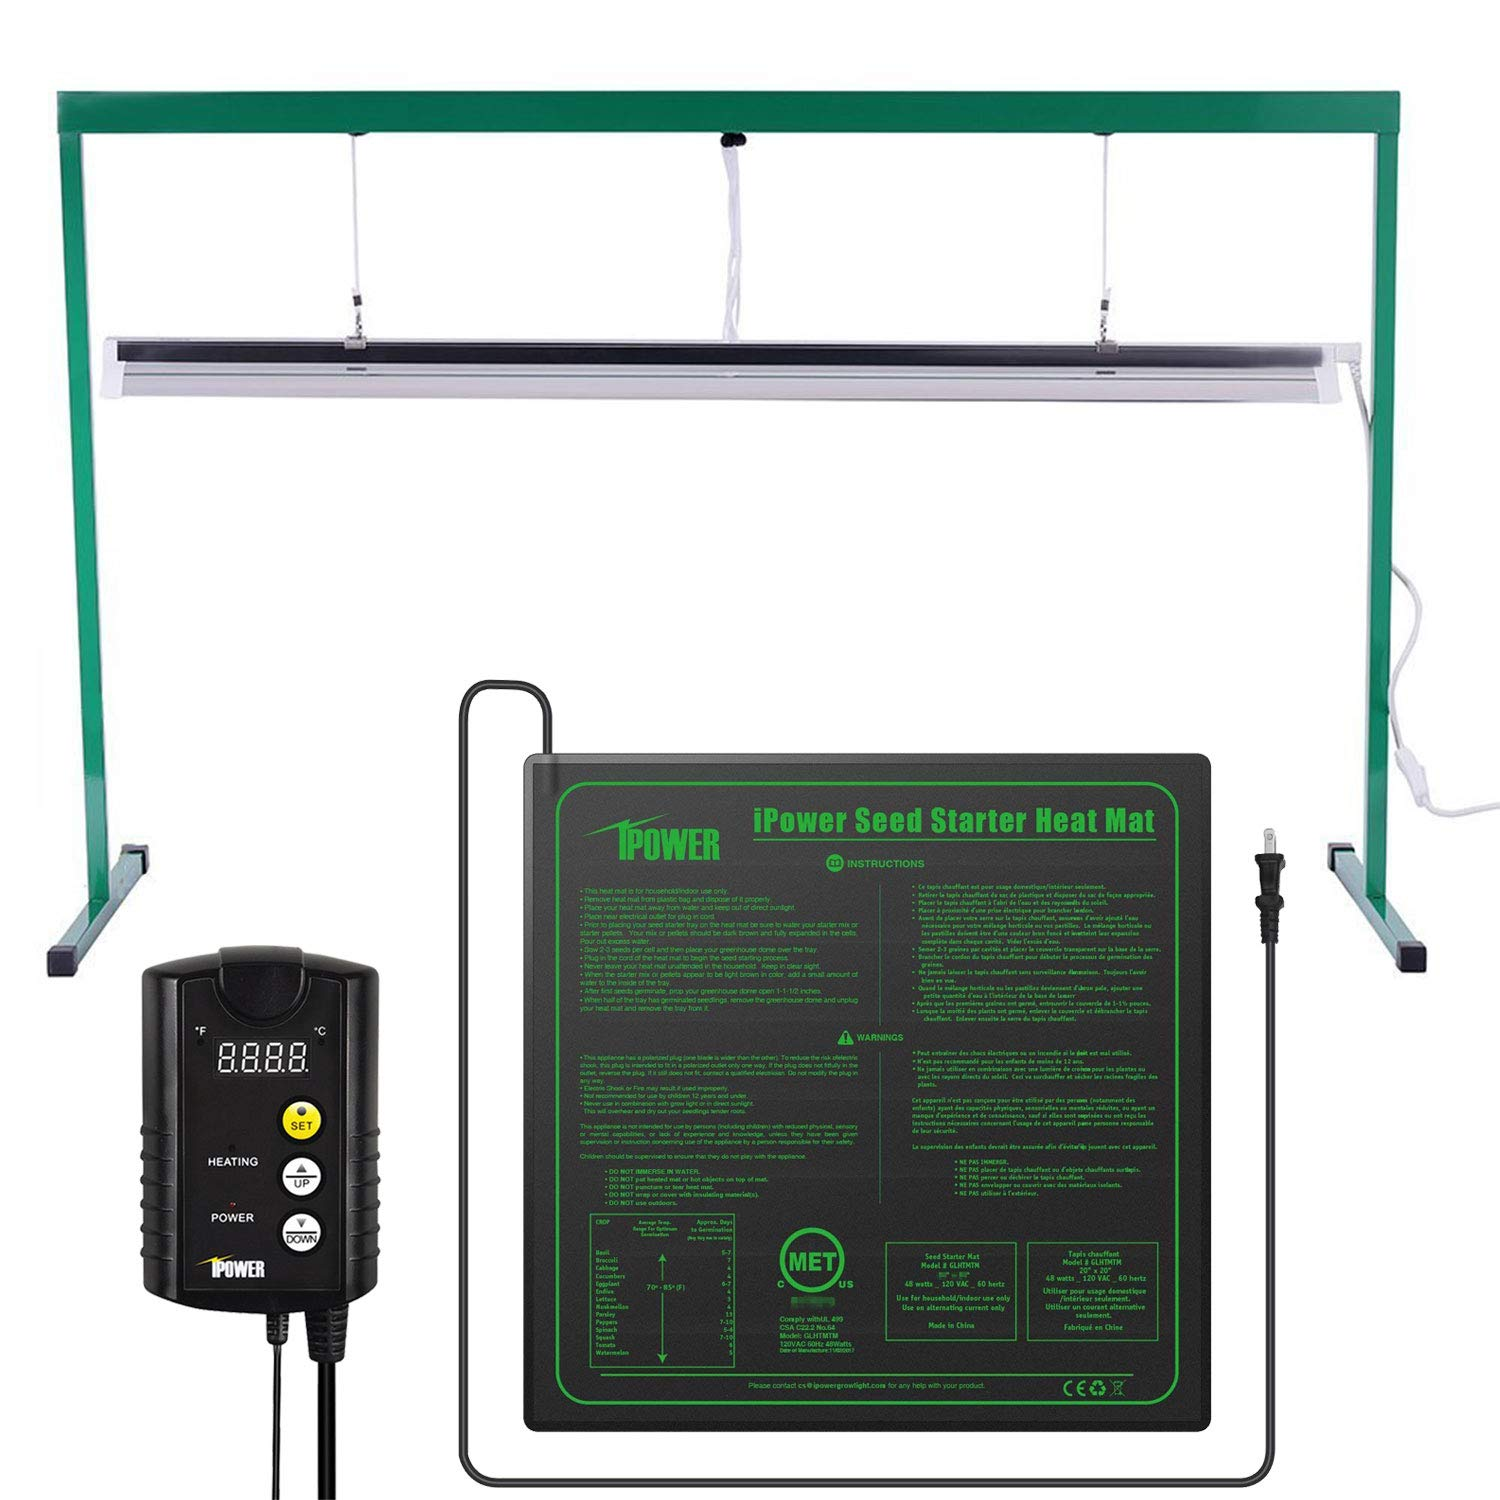 iPower 54W 4 Feet T5 Fluorescent Grow Light Stand Rack (6400k) and 20'' x 20'' Seedling Heat Mat and 40-108 Degrees Fahrenheit Digital Heat Mat Thermostat Controller Combo Set for Seed Germination